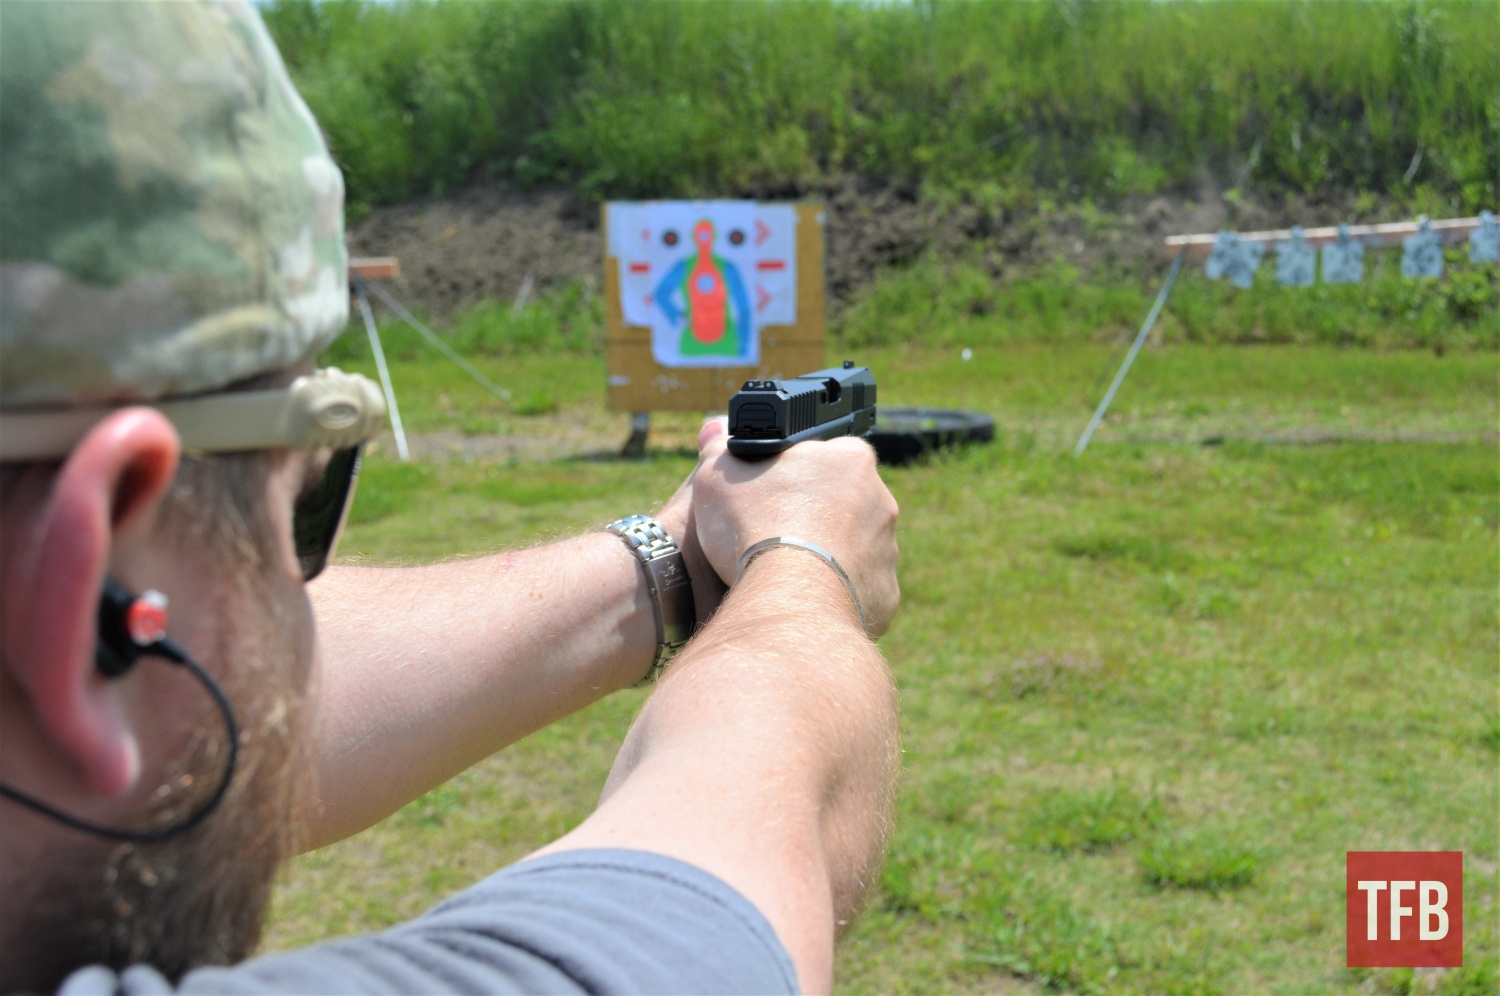 Although the trigger took some getting used to, the TM-9 shot smoothly and accurately with rapid reps on steel plates.